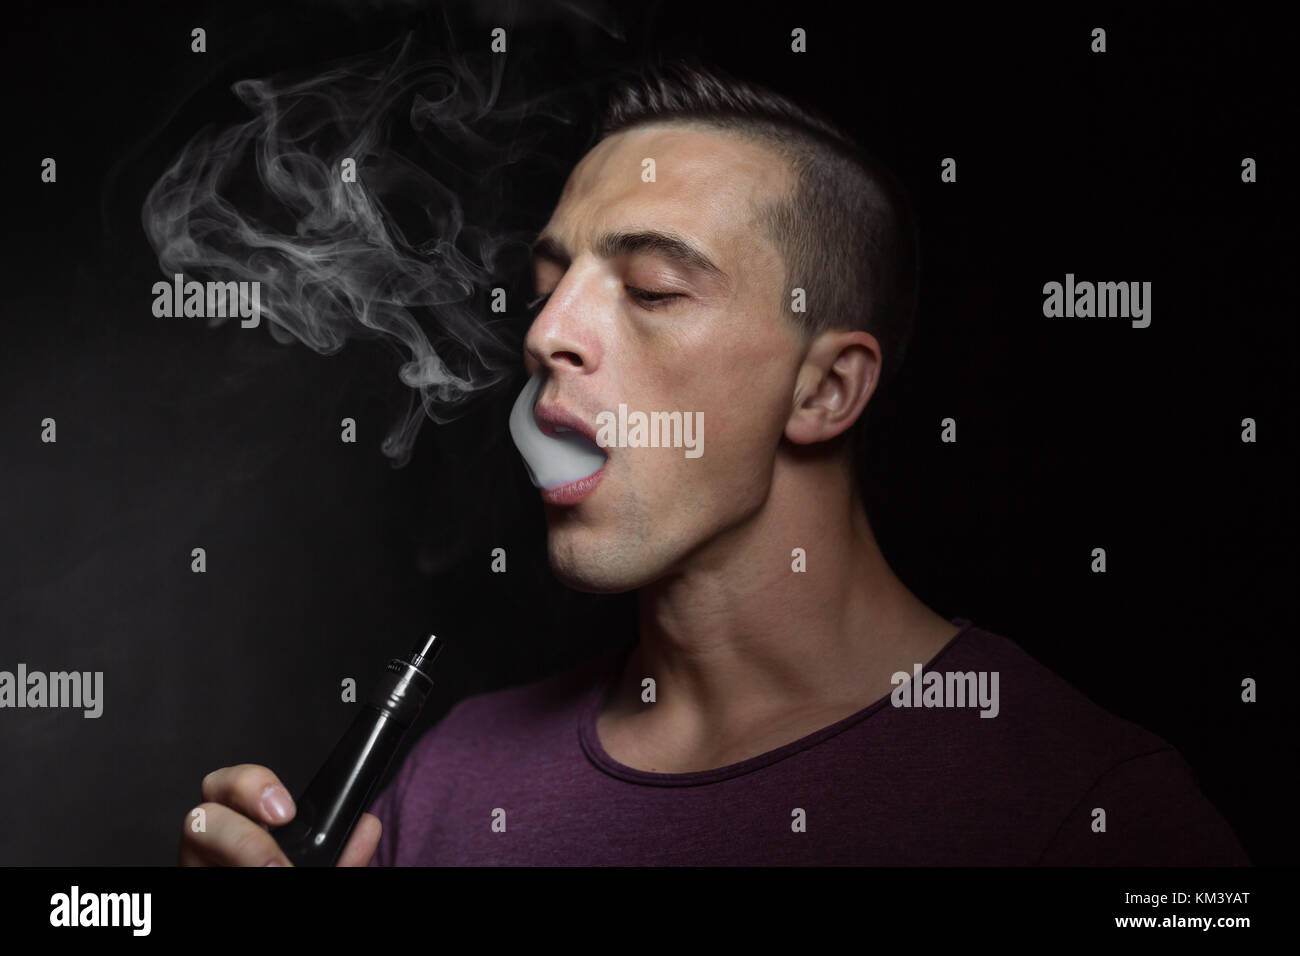 Man on black background vaping and releasing a cloud. - Stock Image